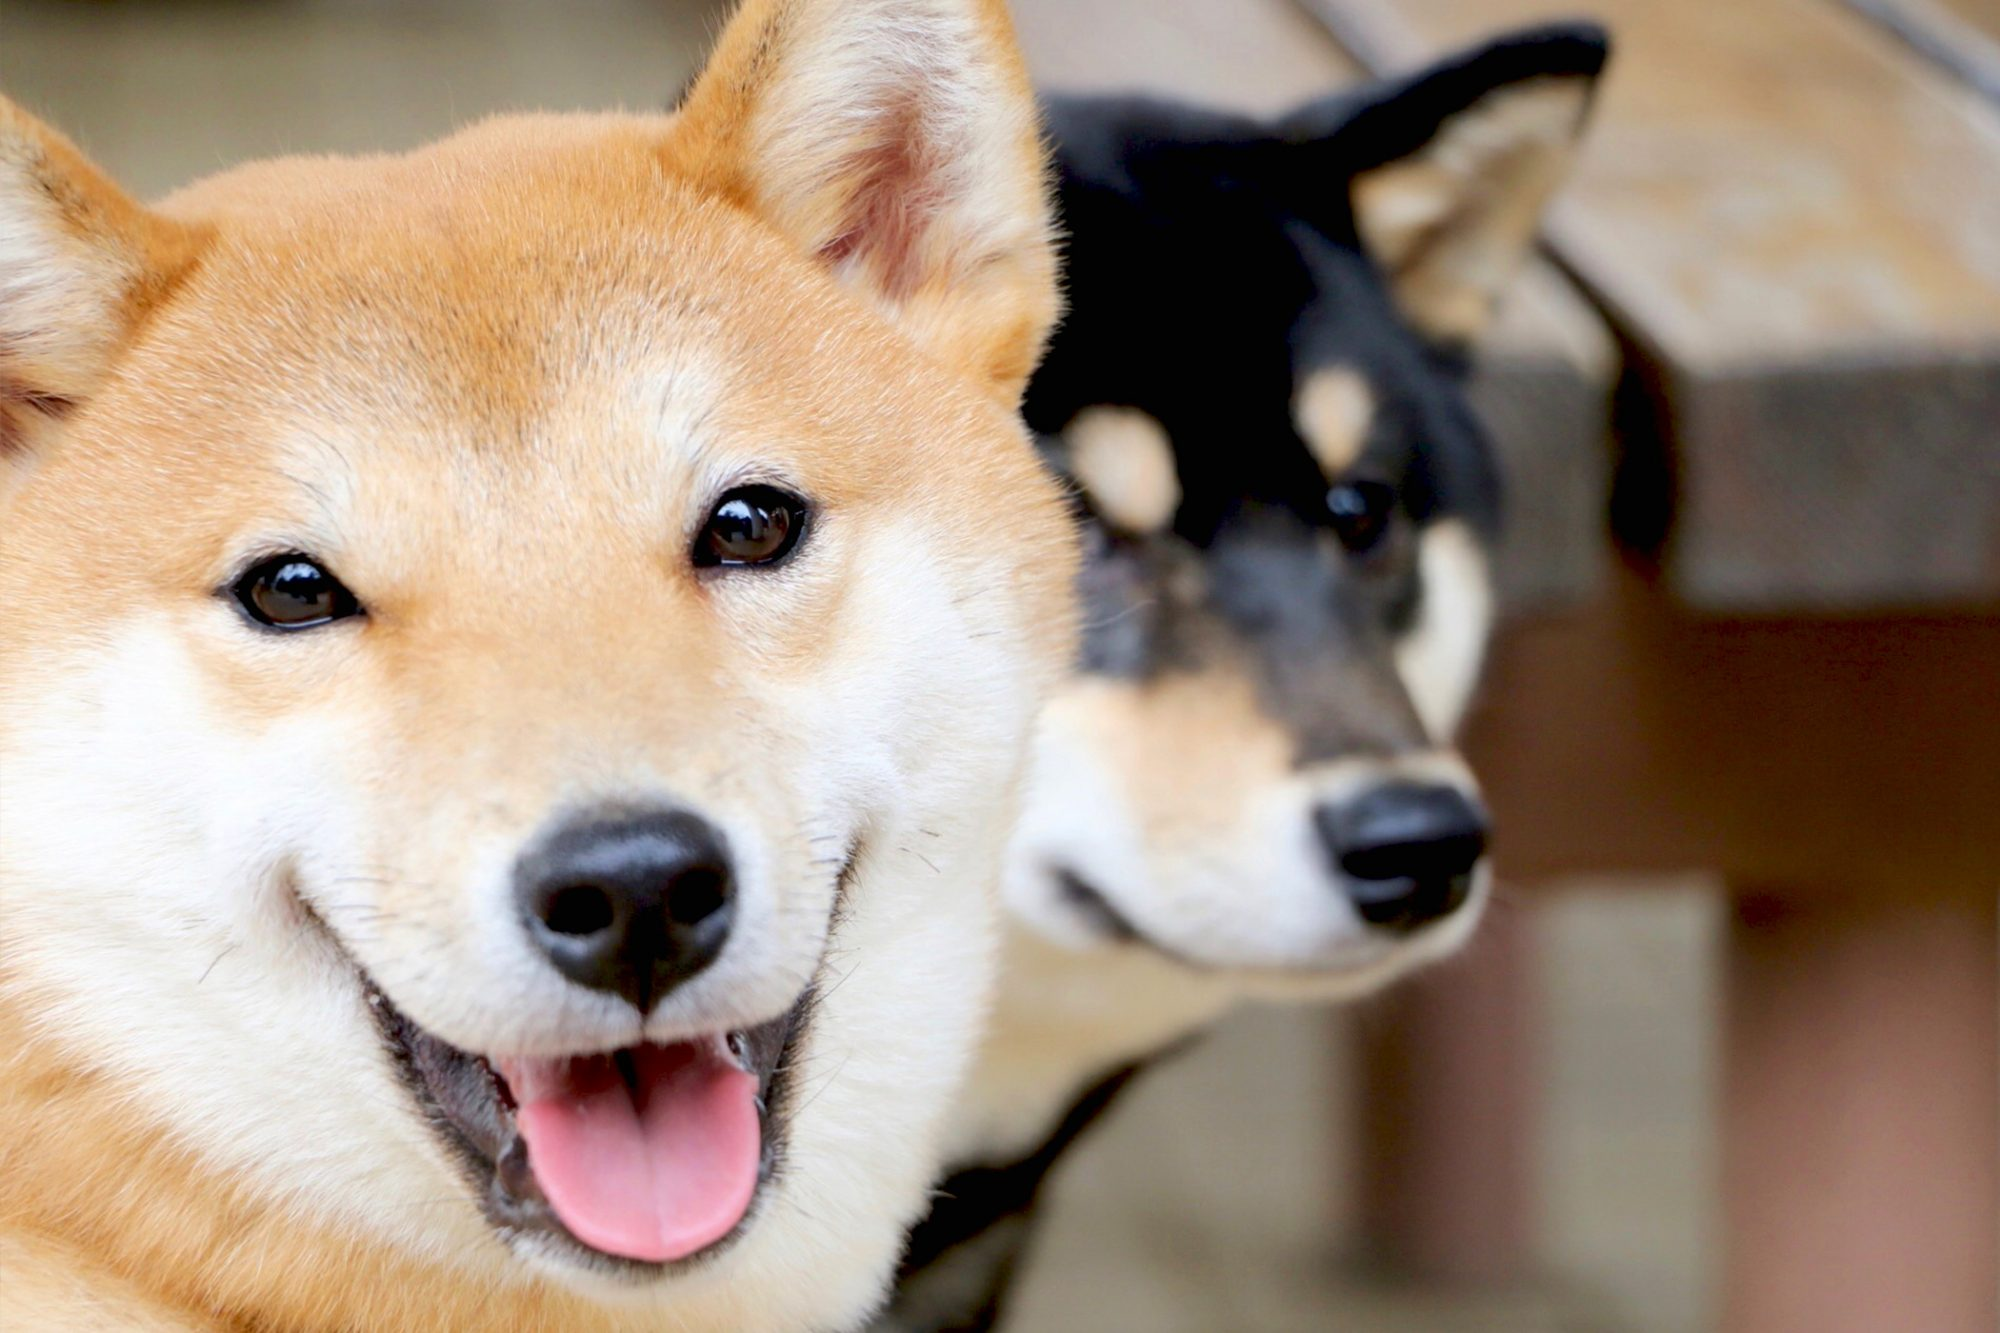 Blonde and black and tan shiba inu stand next to each other in close-up photo